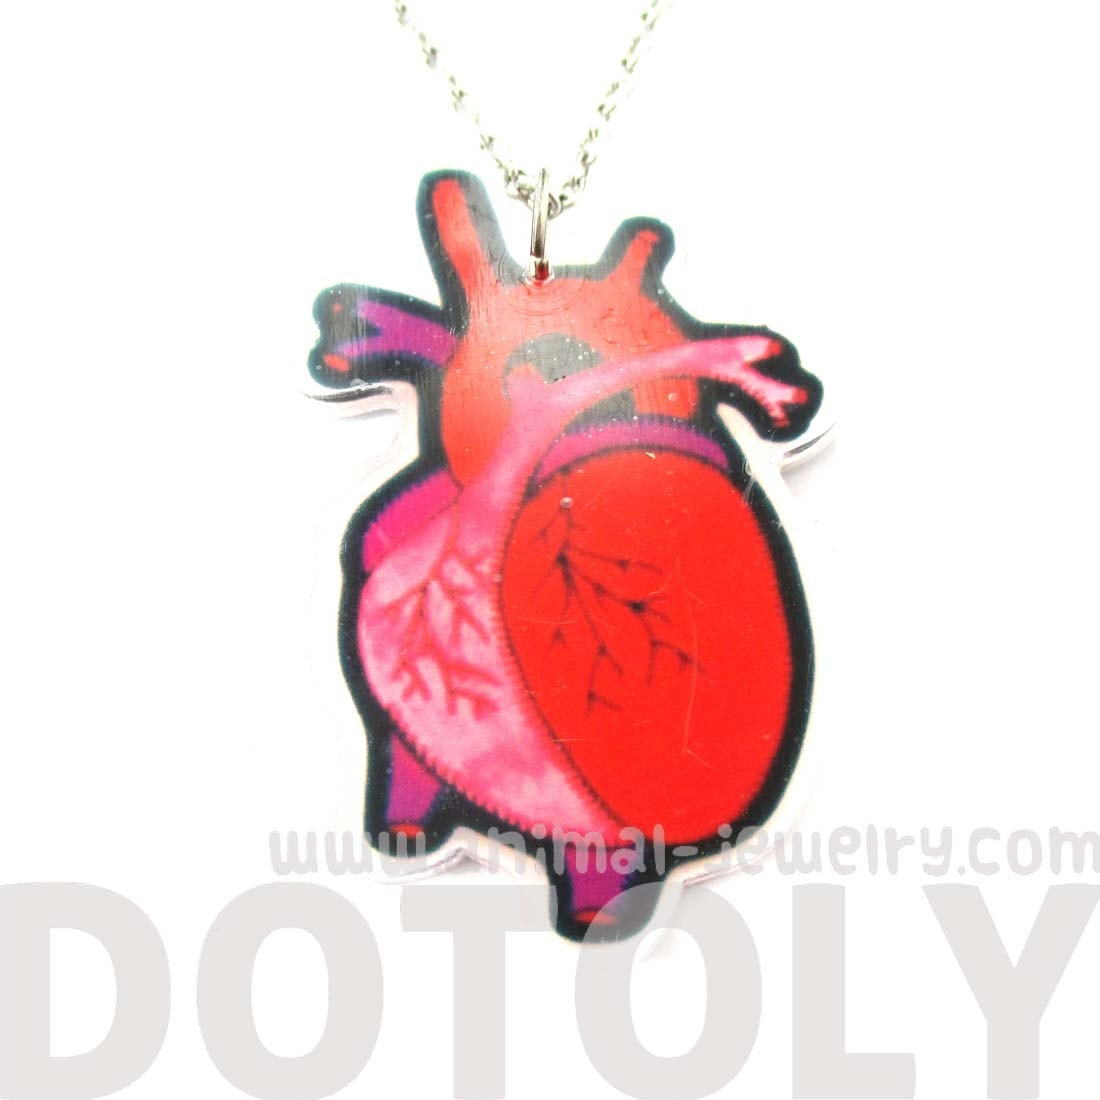 My Heart Belongs To You Human Heart Anatomy Shaped Necklace in Acrylic